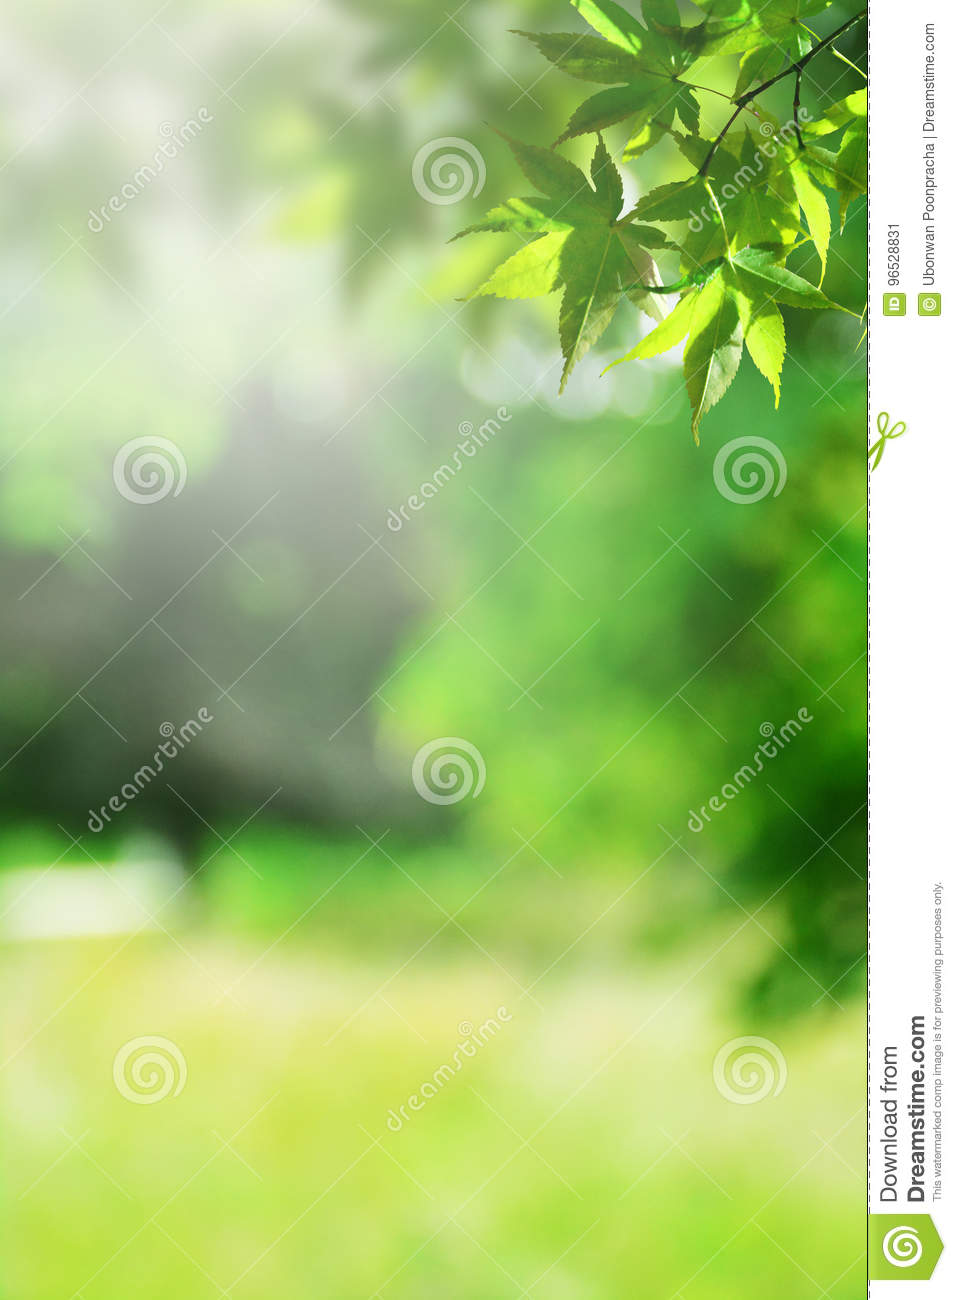 Fresh Green Nature Blur Background Stock Image Image Of Copy Light 96528831